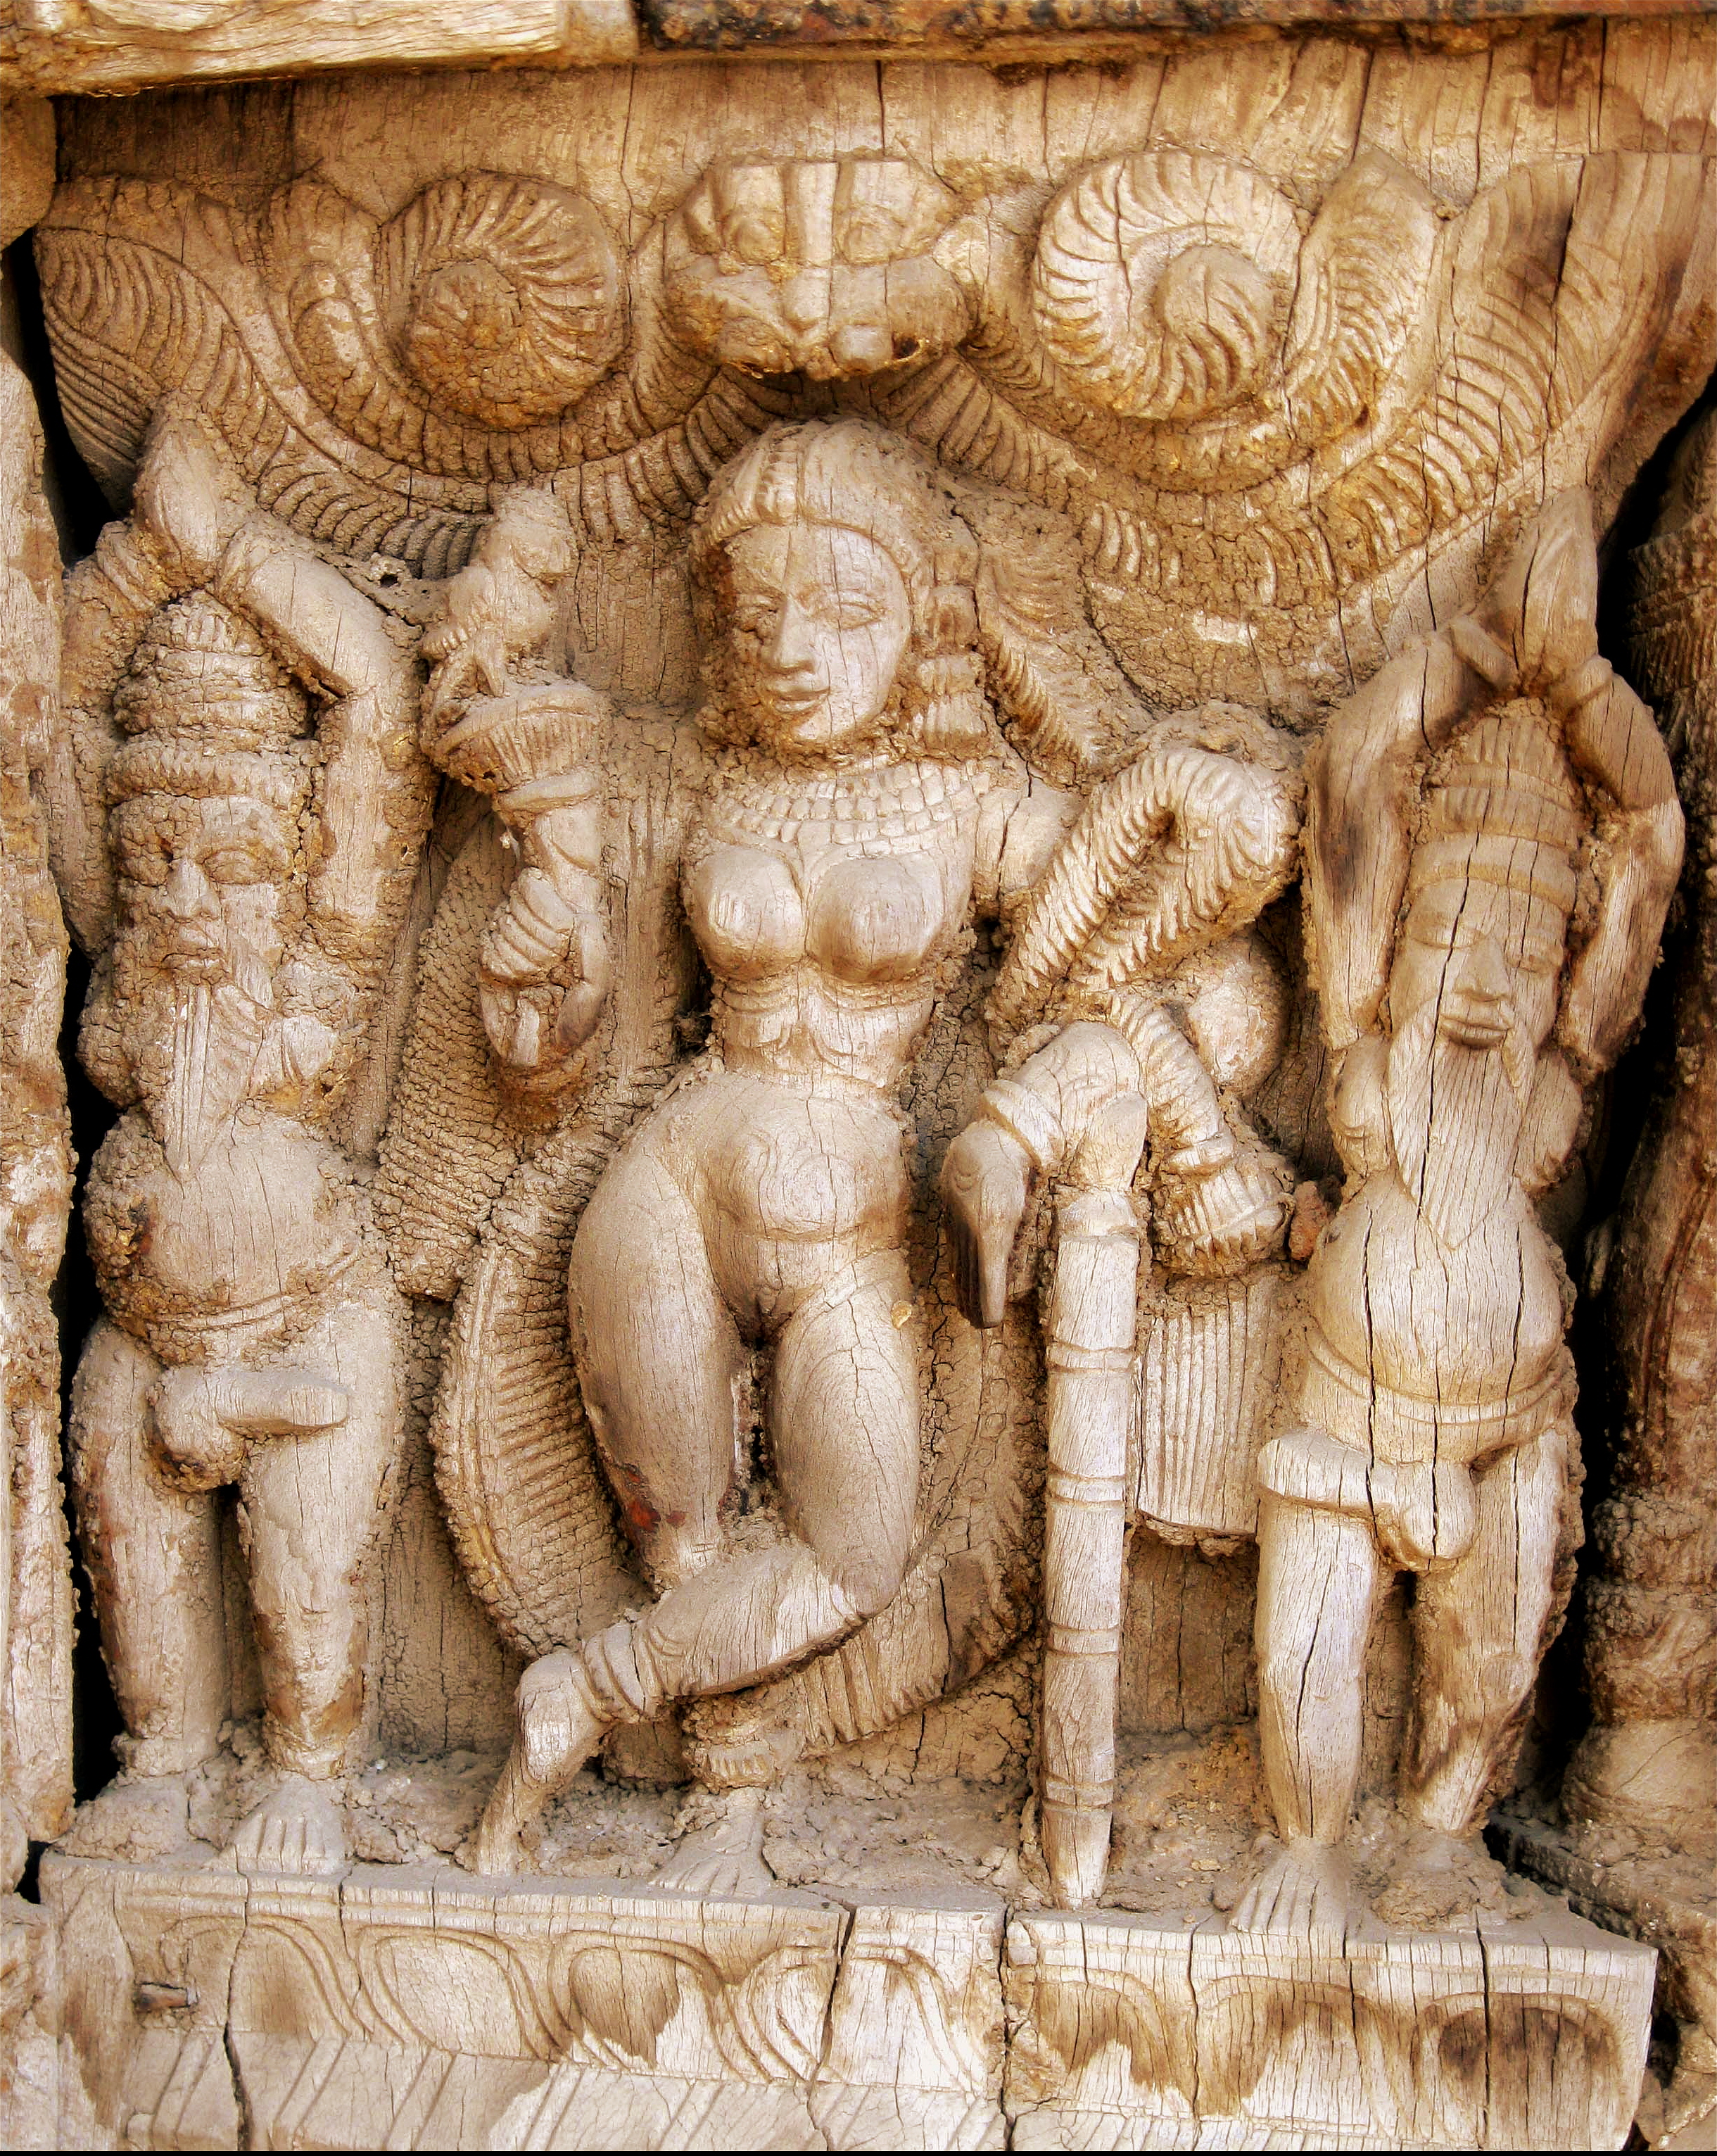 File:Wood carving detail2 - Vishnu Mohini.jpg - Wikipedia, the ...